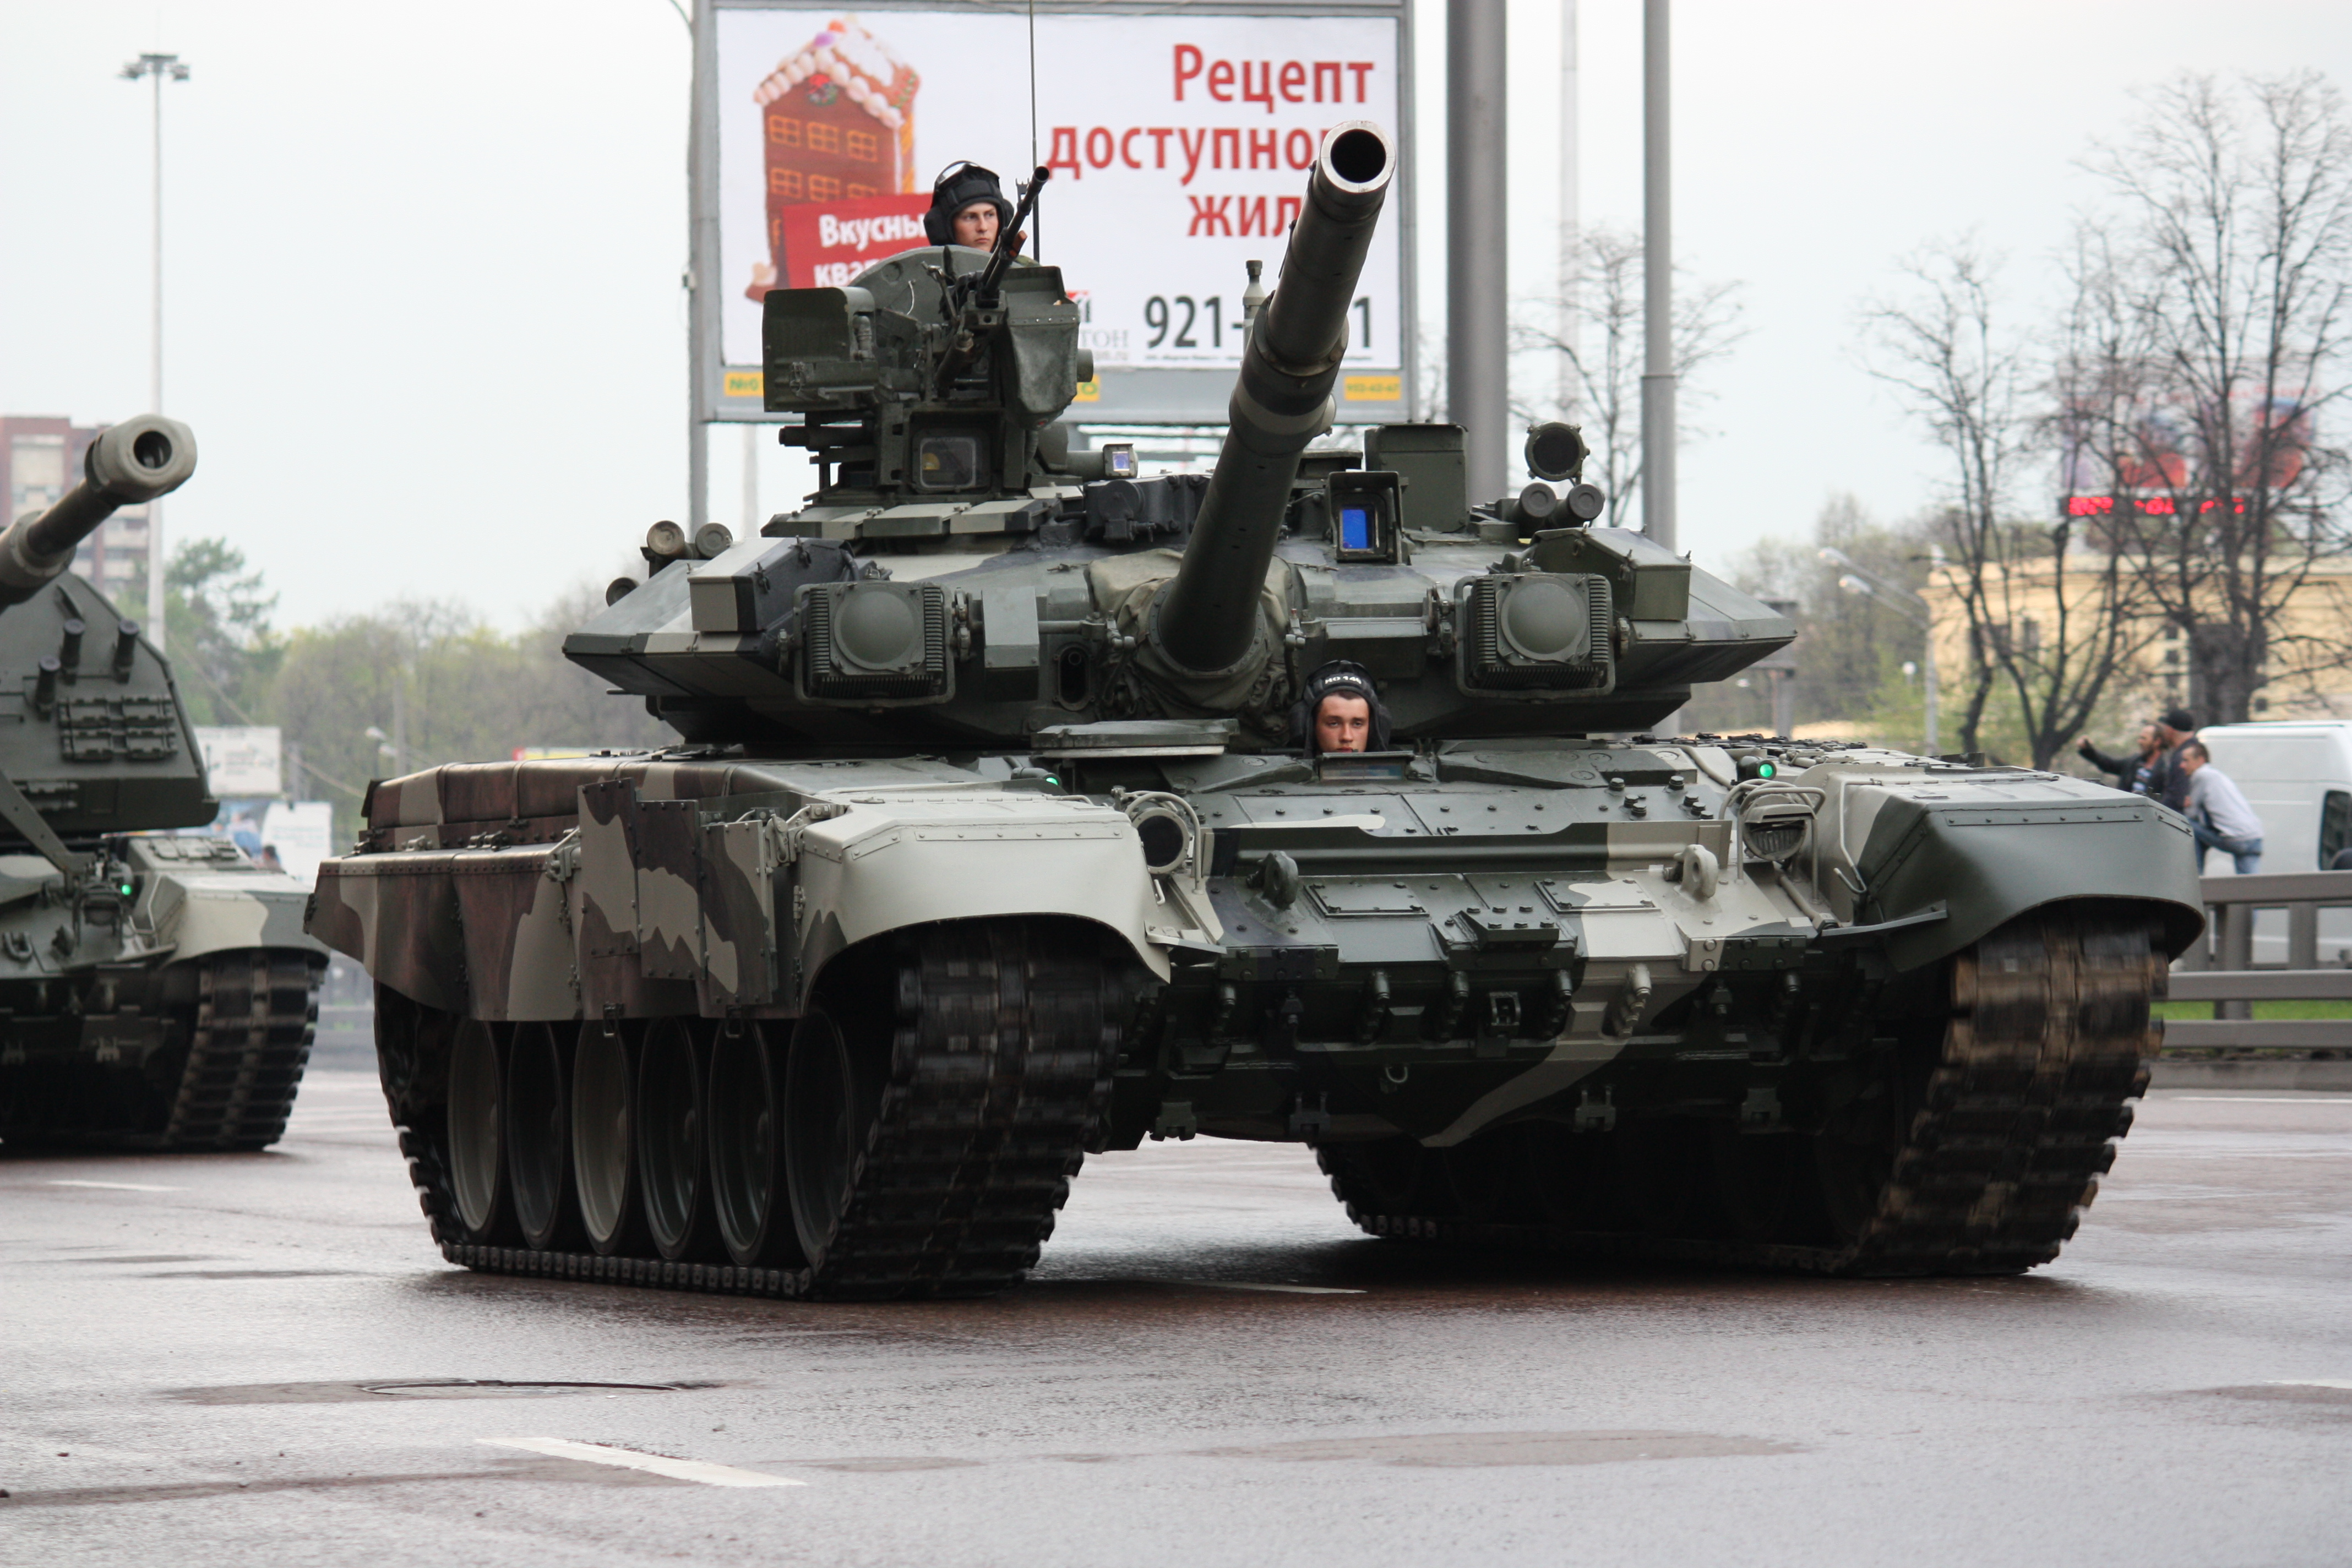 A Russian T-90S main battle tank. Compared to the M1A1, it has a smaller but still substantial turret. Note the features common with all tanks: large treads, large main gun, prominent turret.